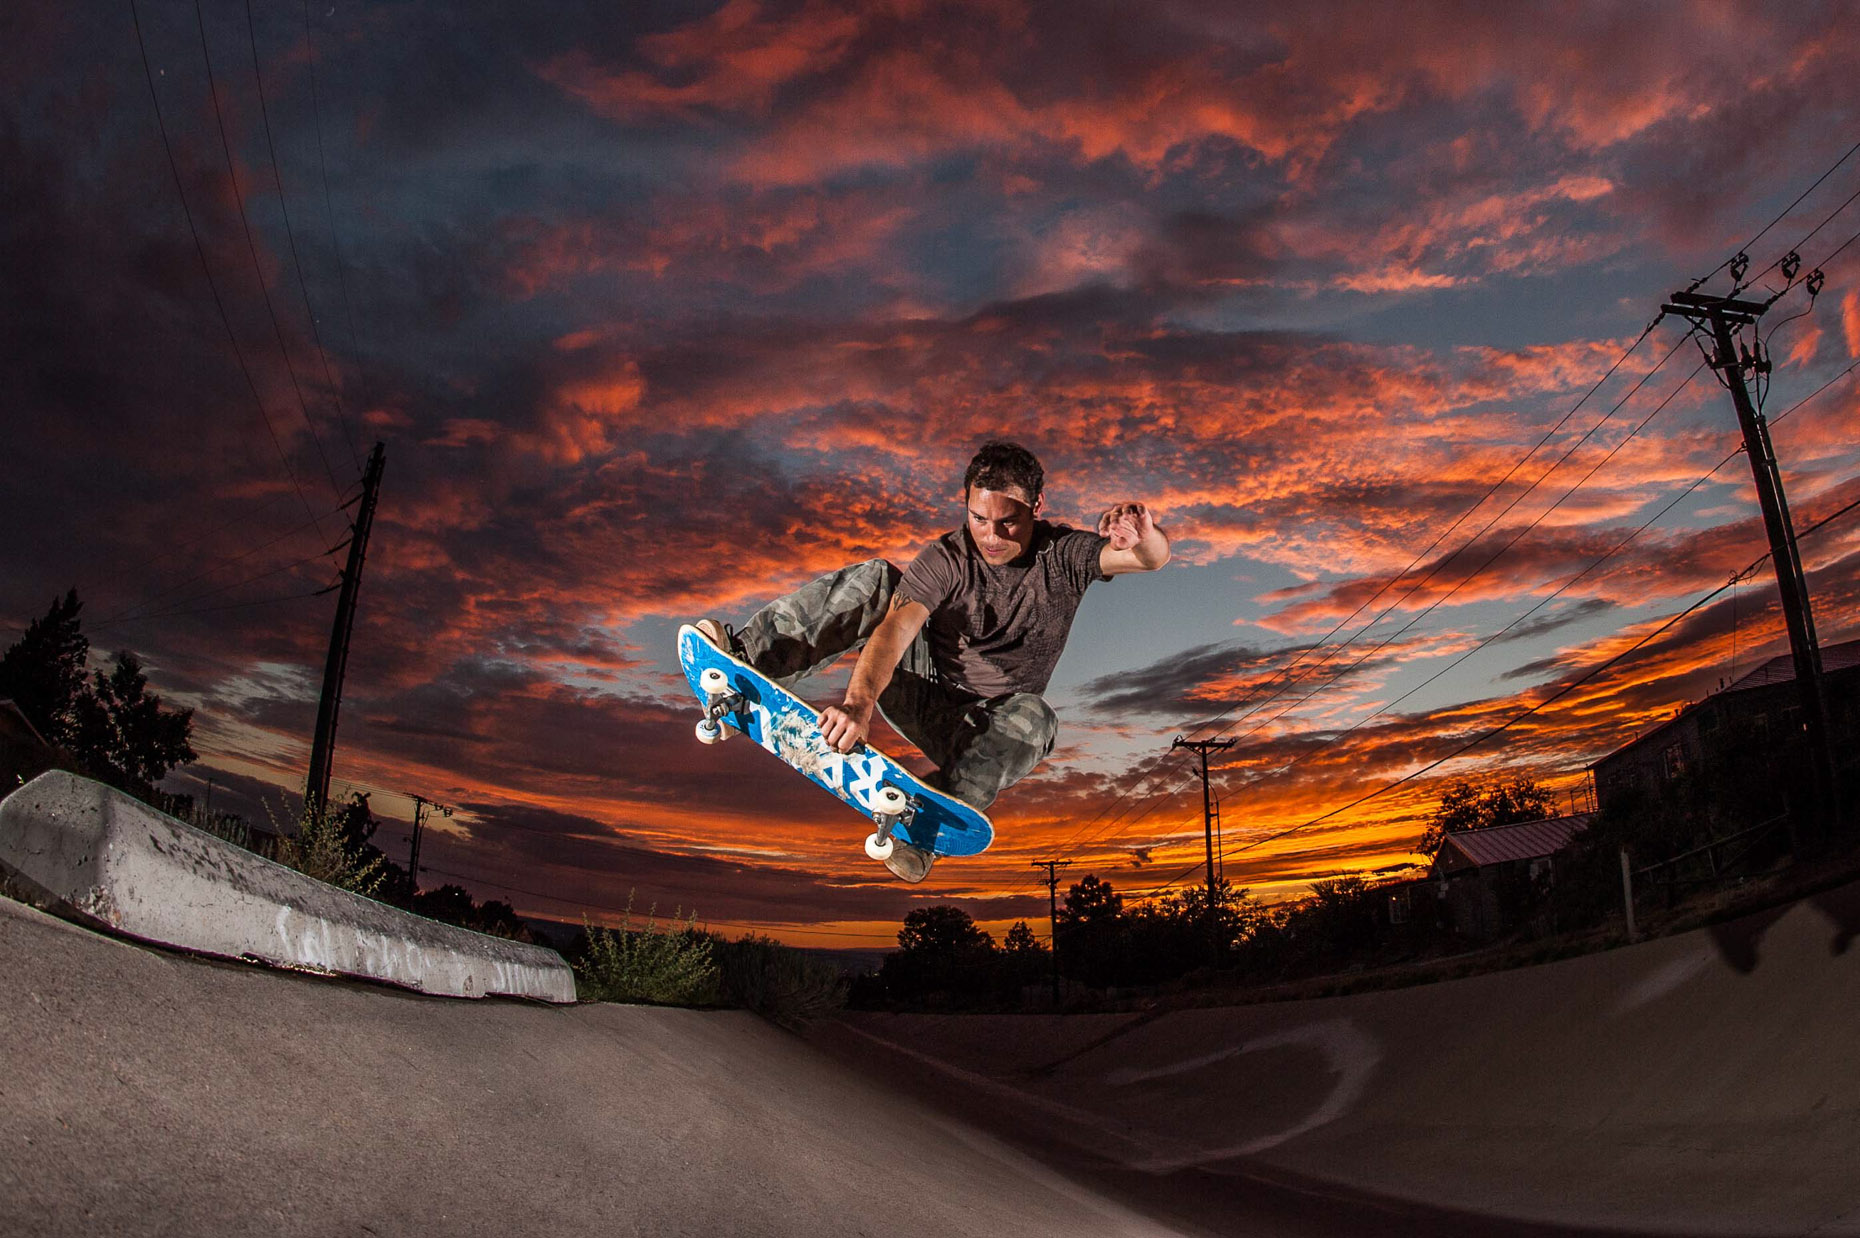 aaron-ingrao-skateboard-ditch-trip-alburquerque-me